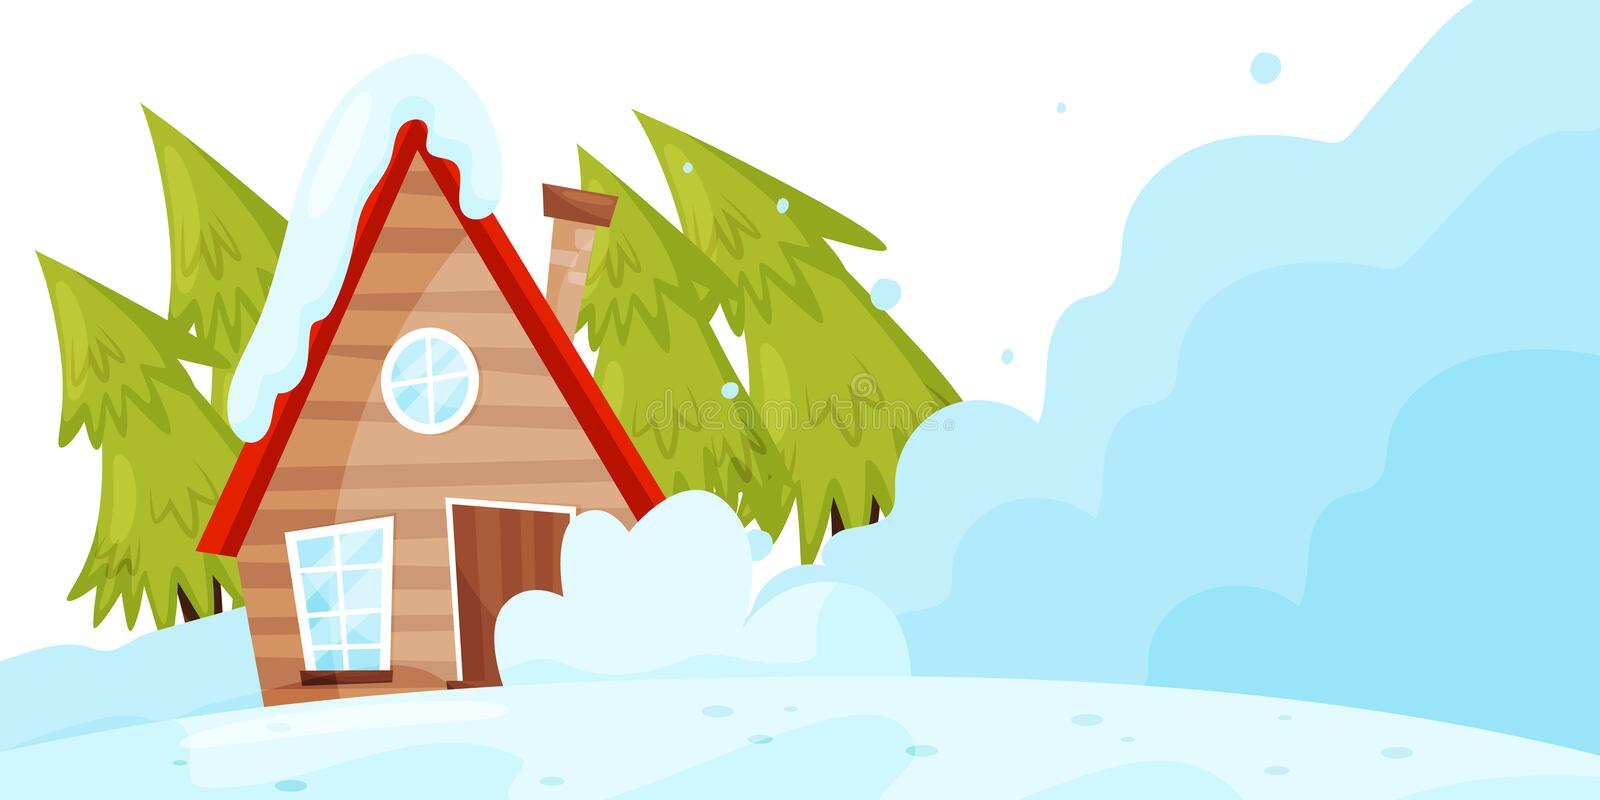 Snow falling down on living house. Avalanche disaster. Winter landscape. Natural catastrophe. Flat vector design royalty free illustration